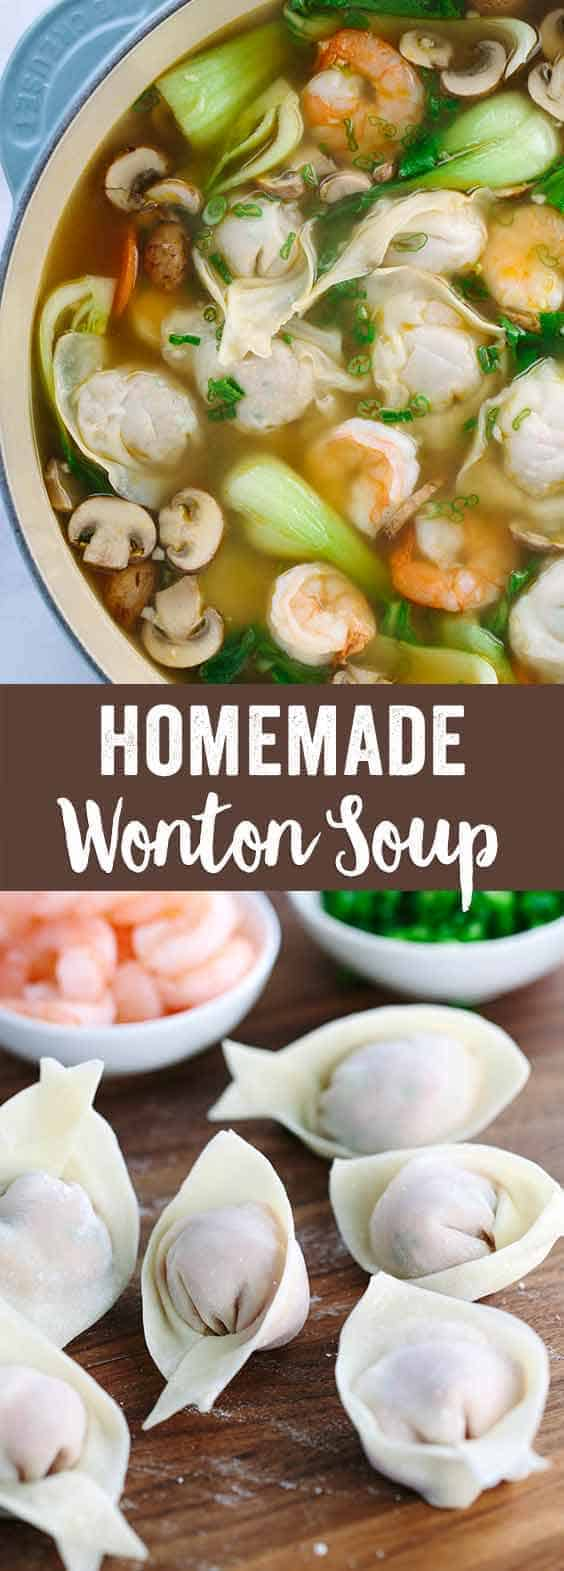 Easy Homemade Wonton Soup Recipe - Each hearty bowl is packed with plump pork dumplings, fresh vegetables, and jumbo shrimp. This authentic Asian meal is fun to make! #chinese #soup #wonton